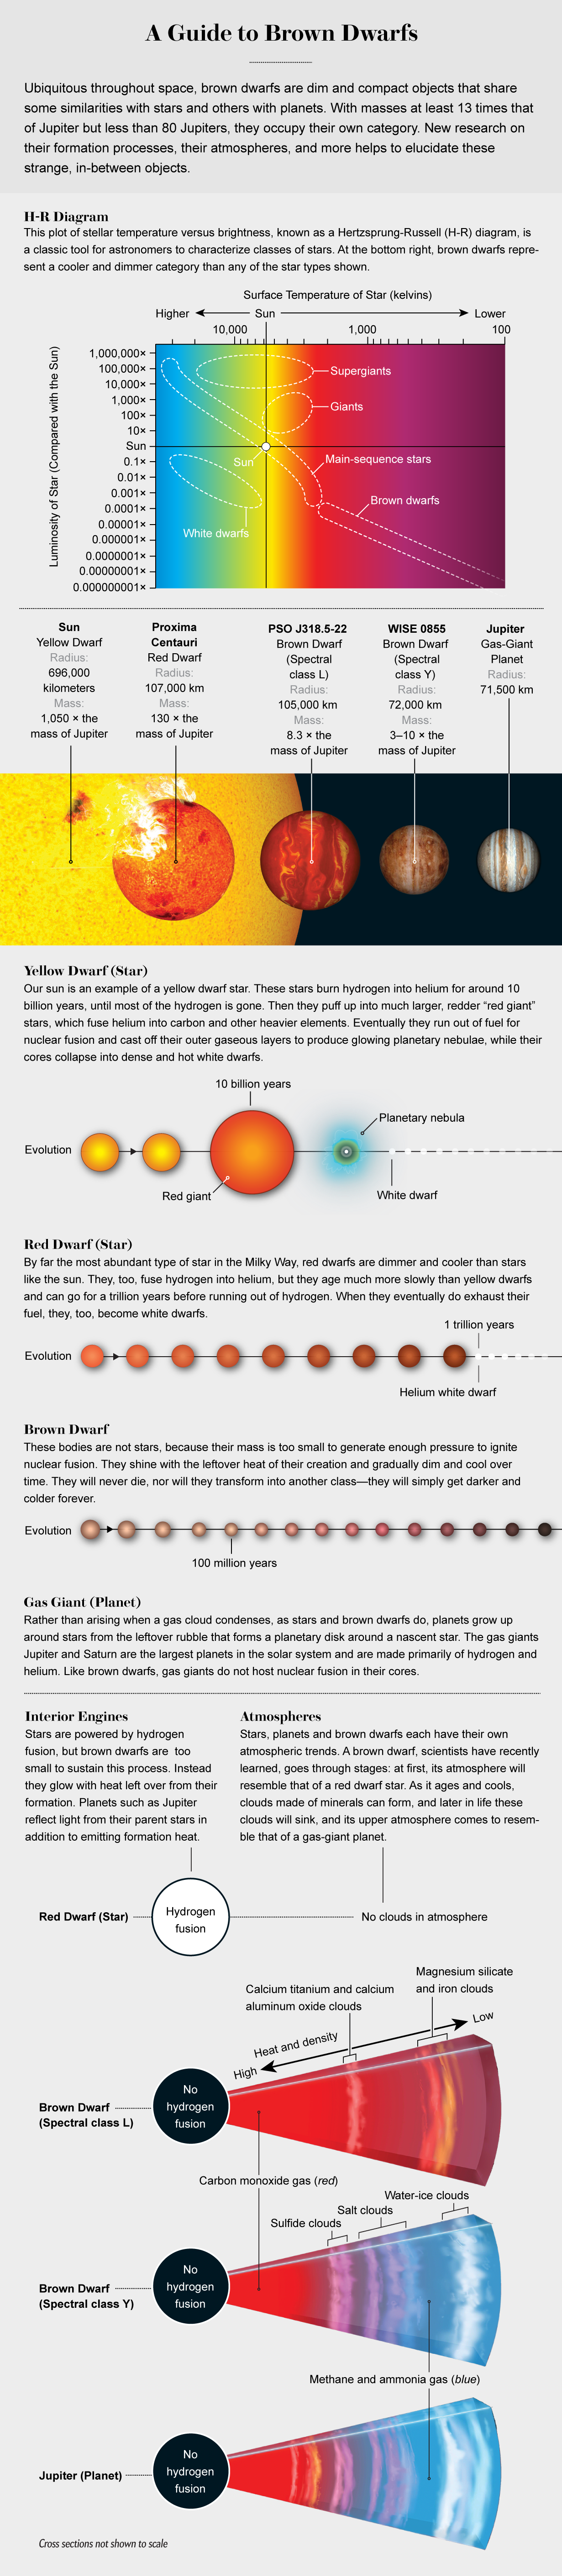 Brown Dwarfs Could Reveal Secrets of Planet and Star Formation